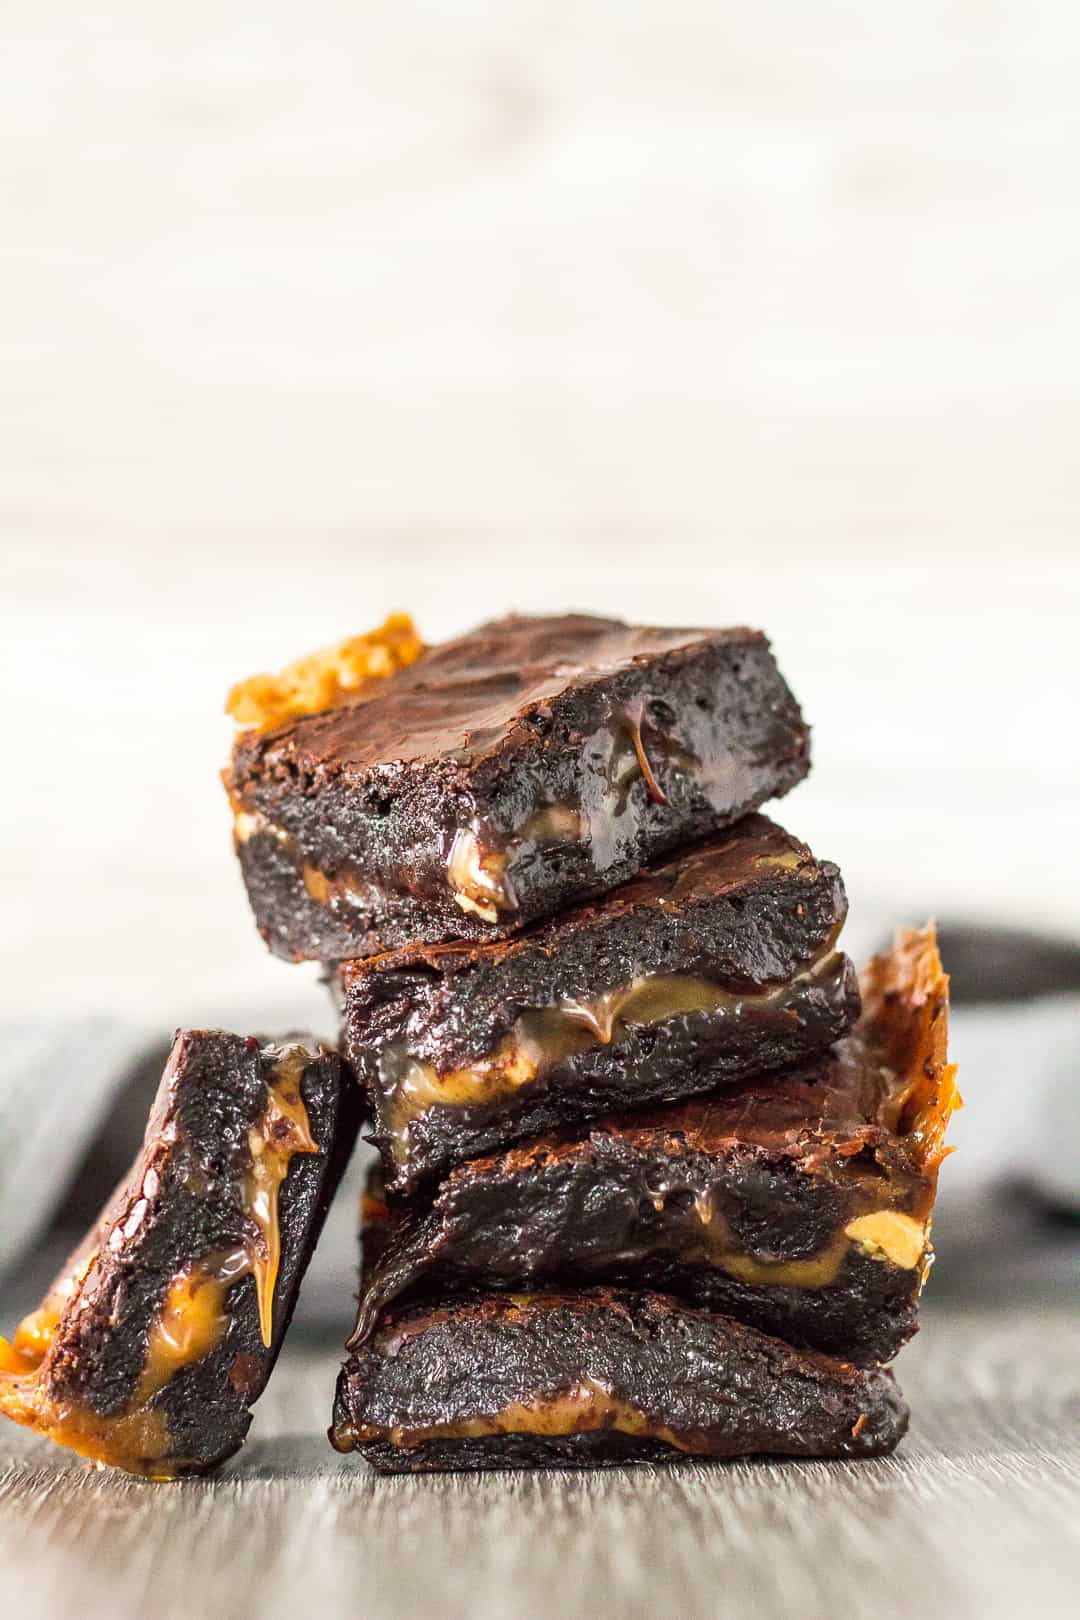 Comfy Mail Nutty Caramel Brownies Nutty Caramel Brownies Baking Addiction How Long Do Brownies Last Unrefrigerated How Long Will Brownies Last nice food How Long Do Brownies Last